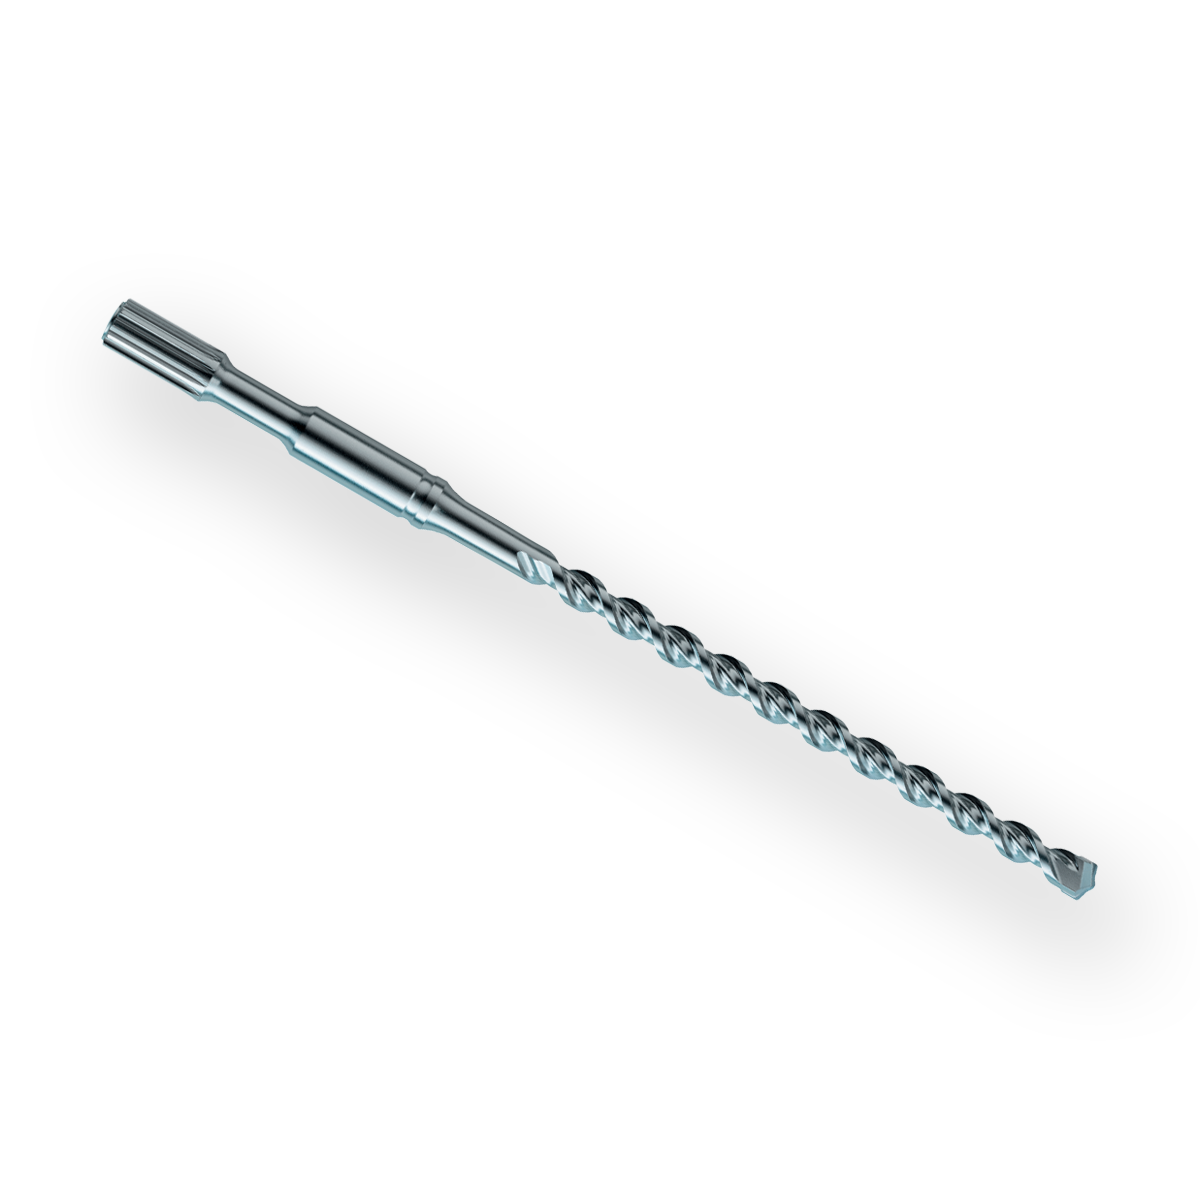 Spline Drill Bit [Includes 6 & 2 Cutting Edge Drill Bits]